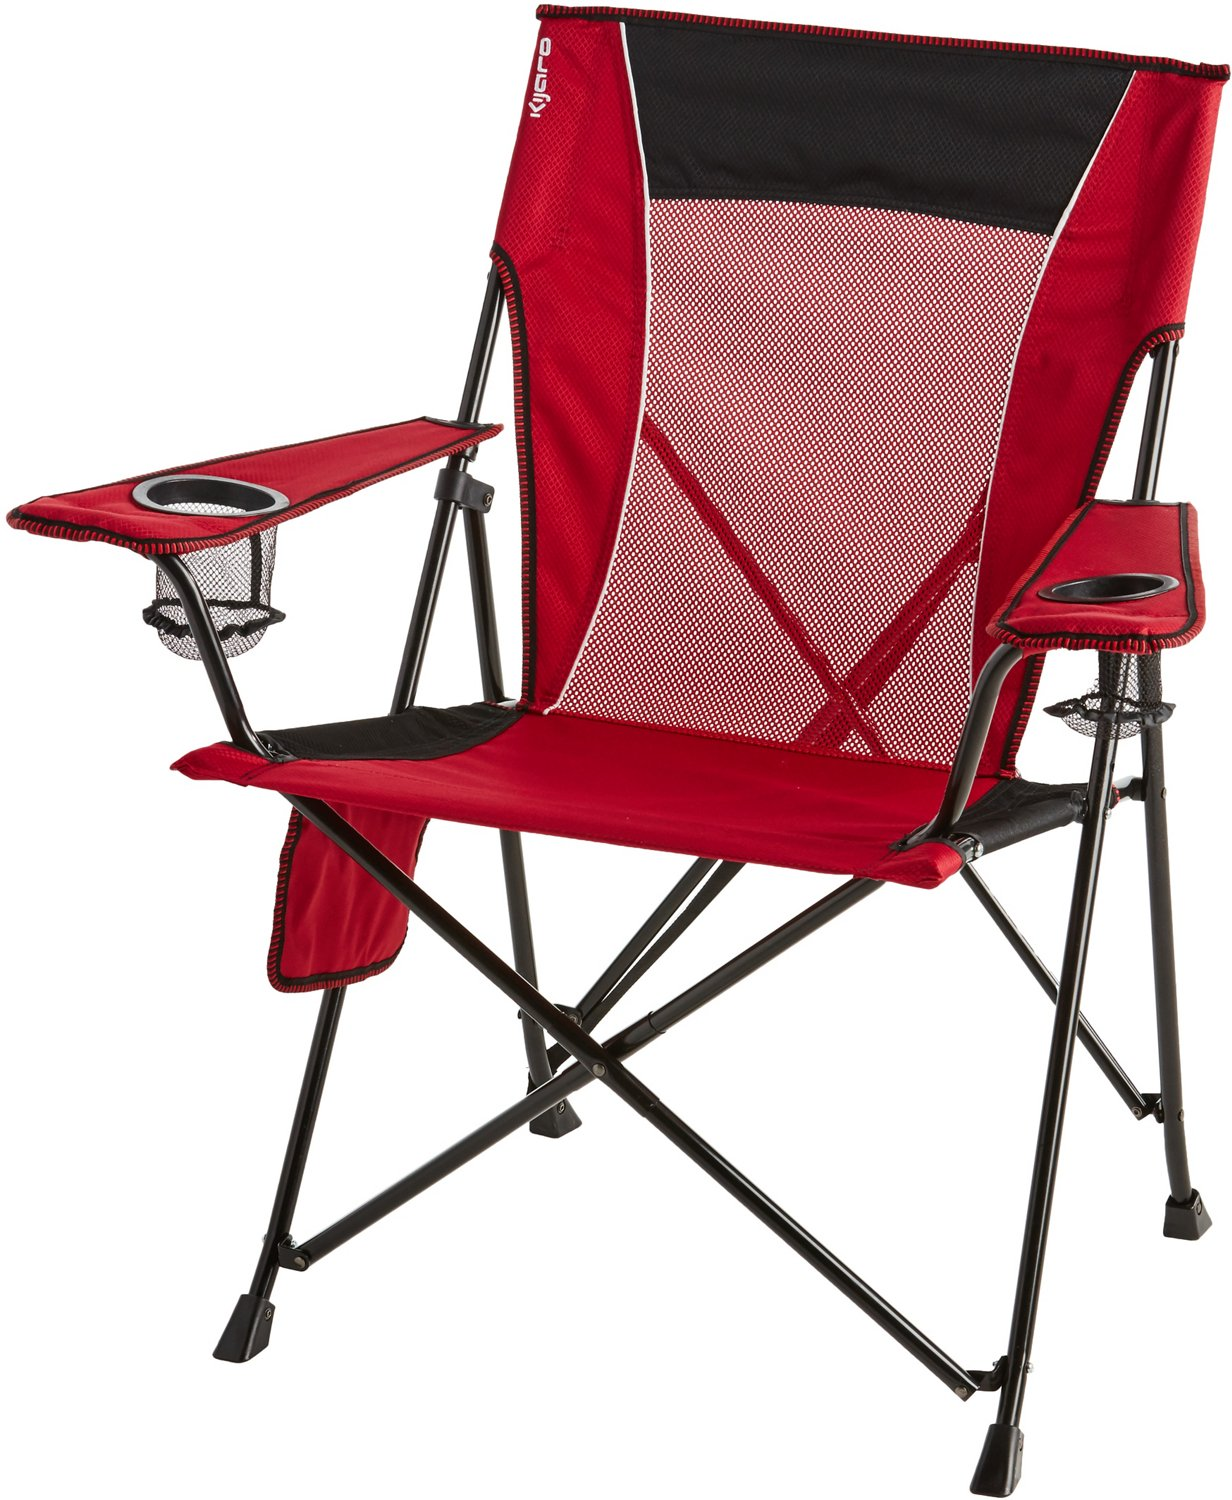 Camping Chair With Canopy Folding Chairs Plastic Wooden Fabric Metal Folding Chairs